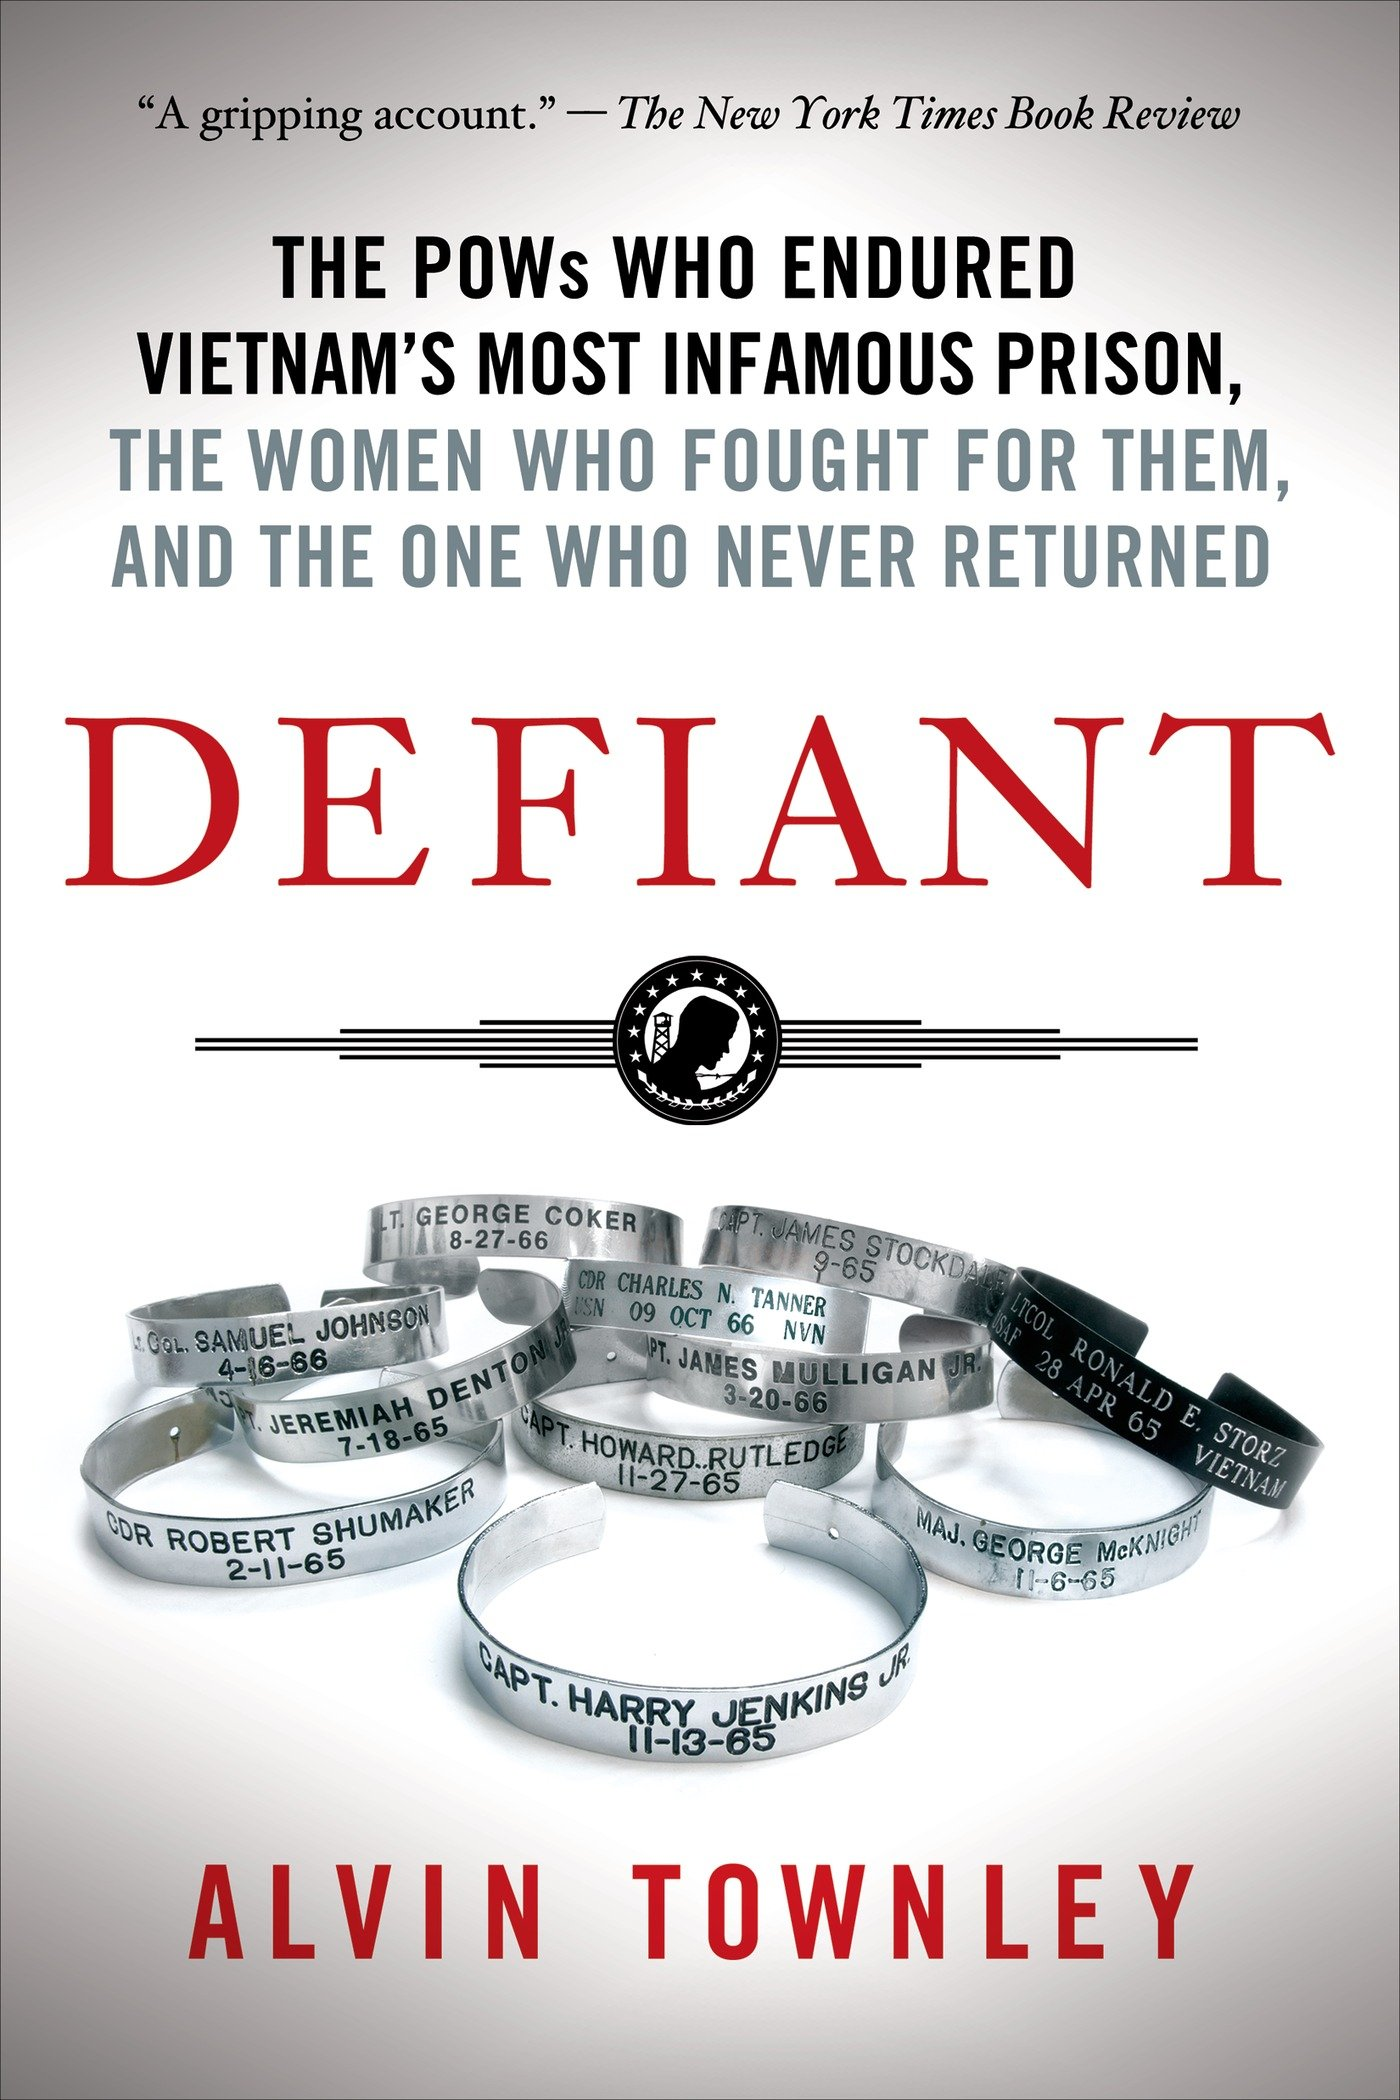 Defiant the pows who endured vietnams most infamous prison the defiant the pows who endured vietnams most infamous prison the women who fought for them and the one who never returned alvin townley 9781250060334 fandeluxe